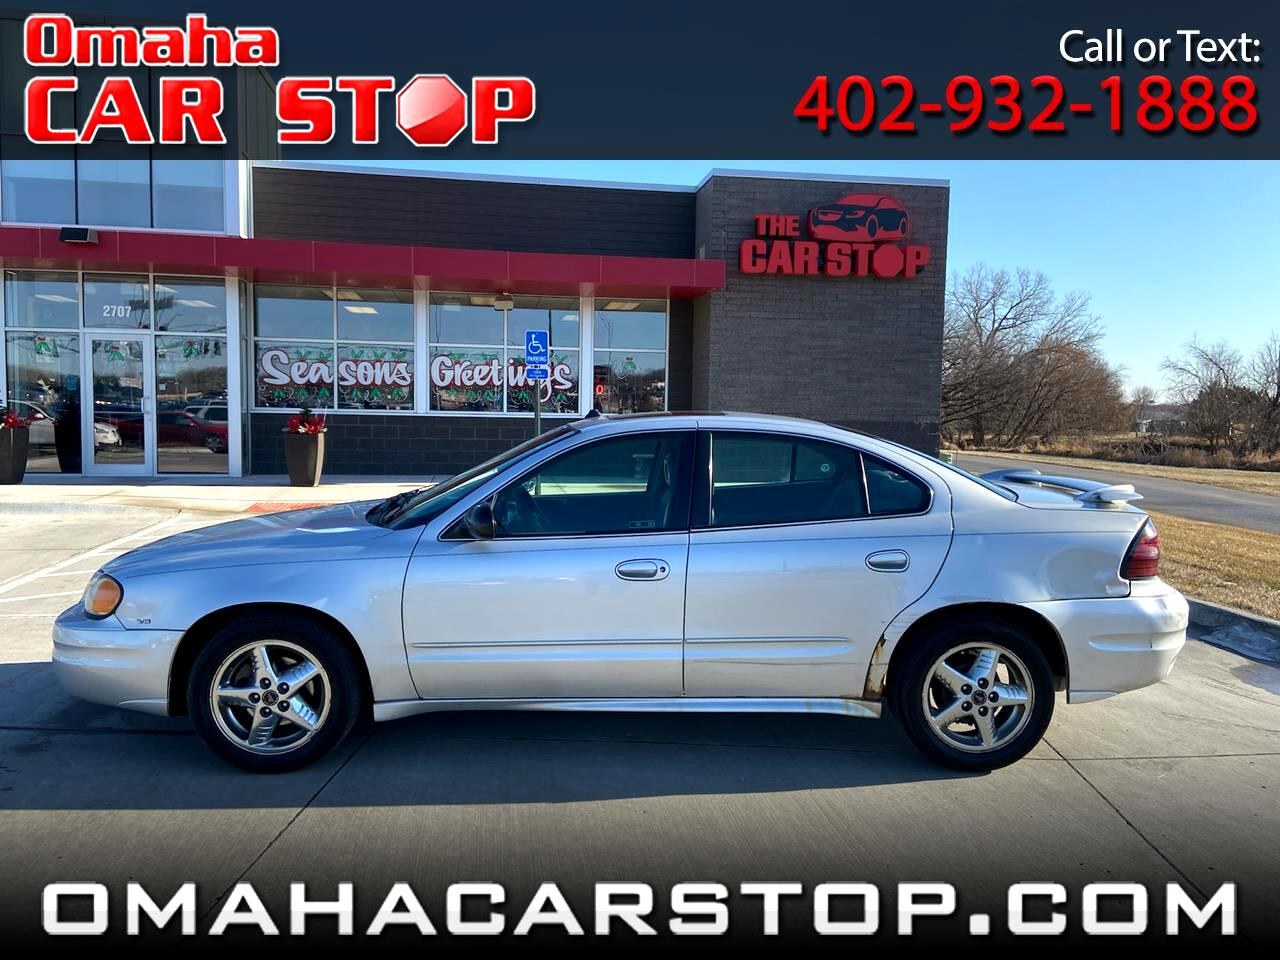 Pontiac Grand Am 4dr Sdn SE2 2004